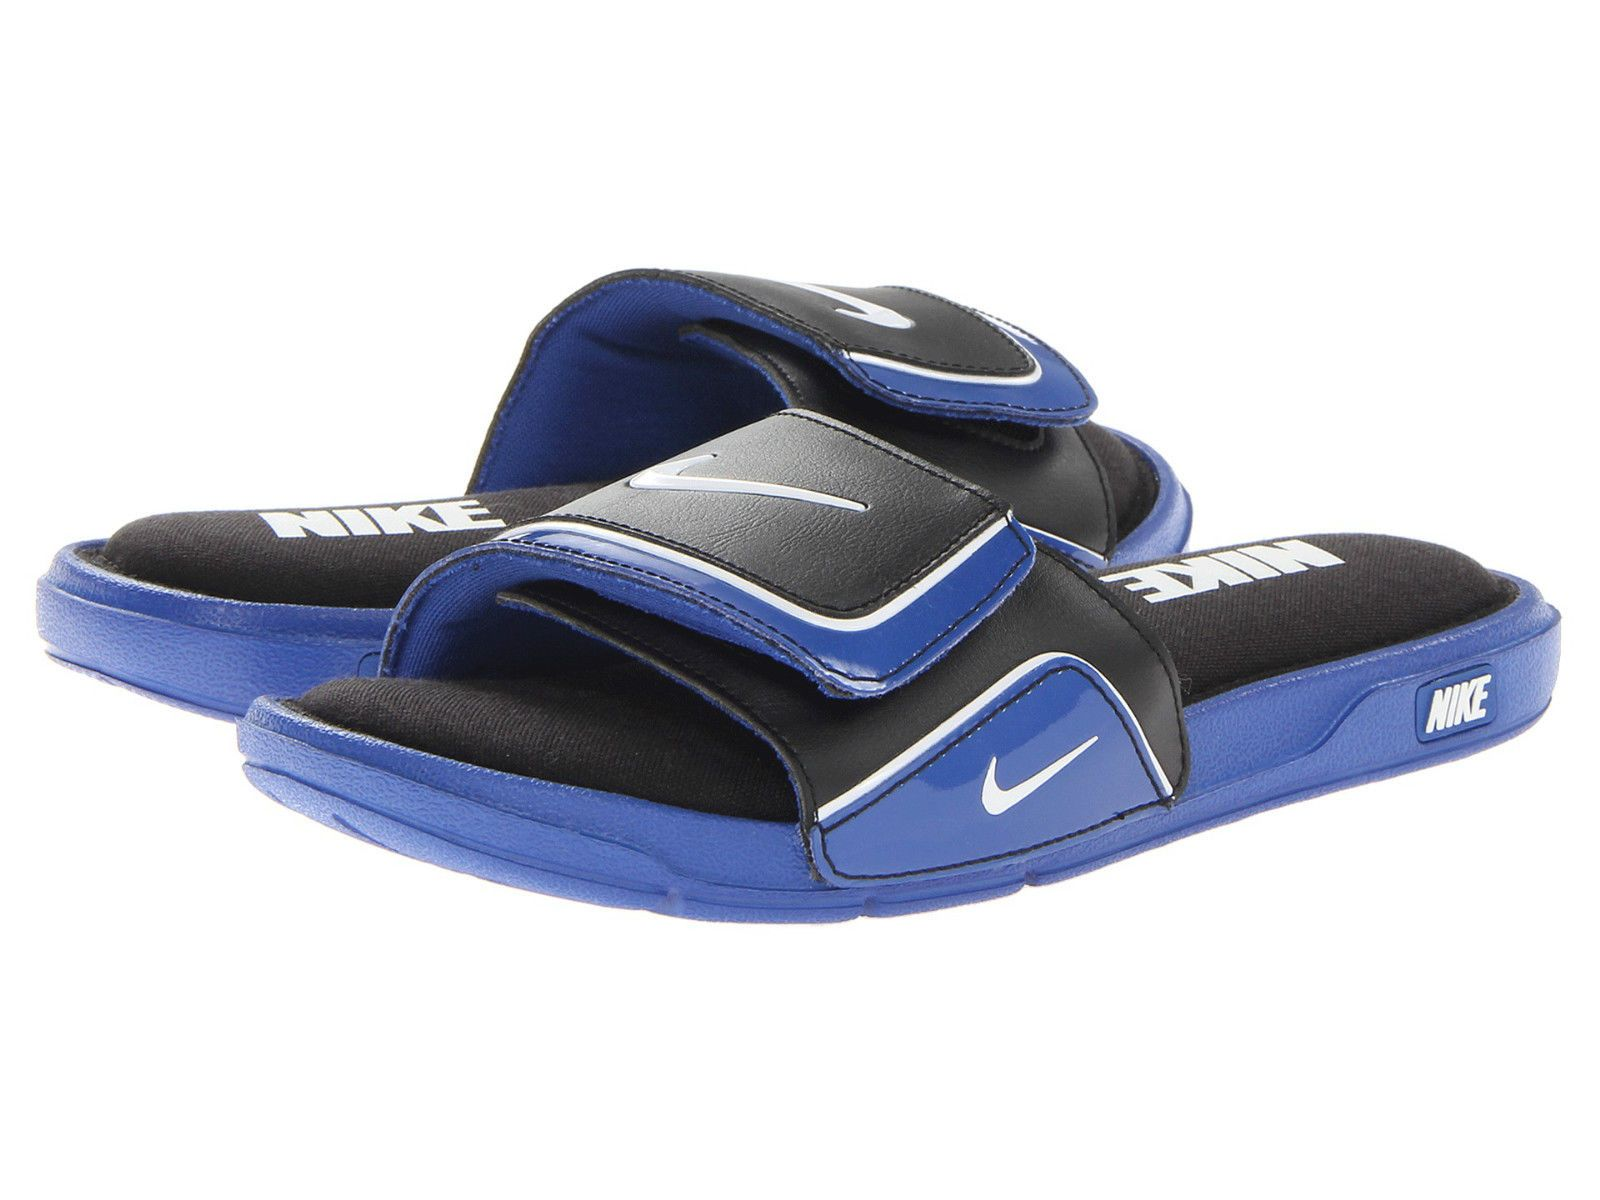 sandal sandals black s slide mens nike comforter comfort men lifestyle shoes